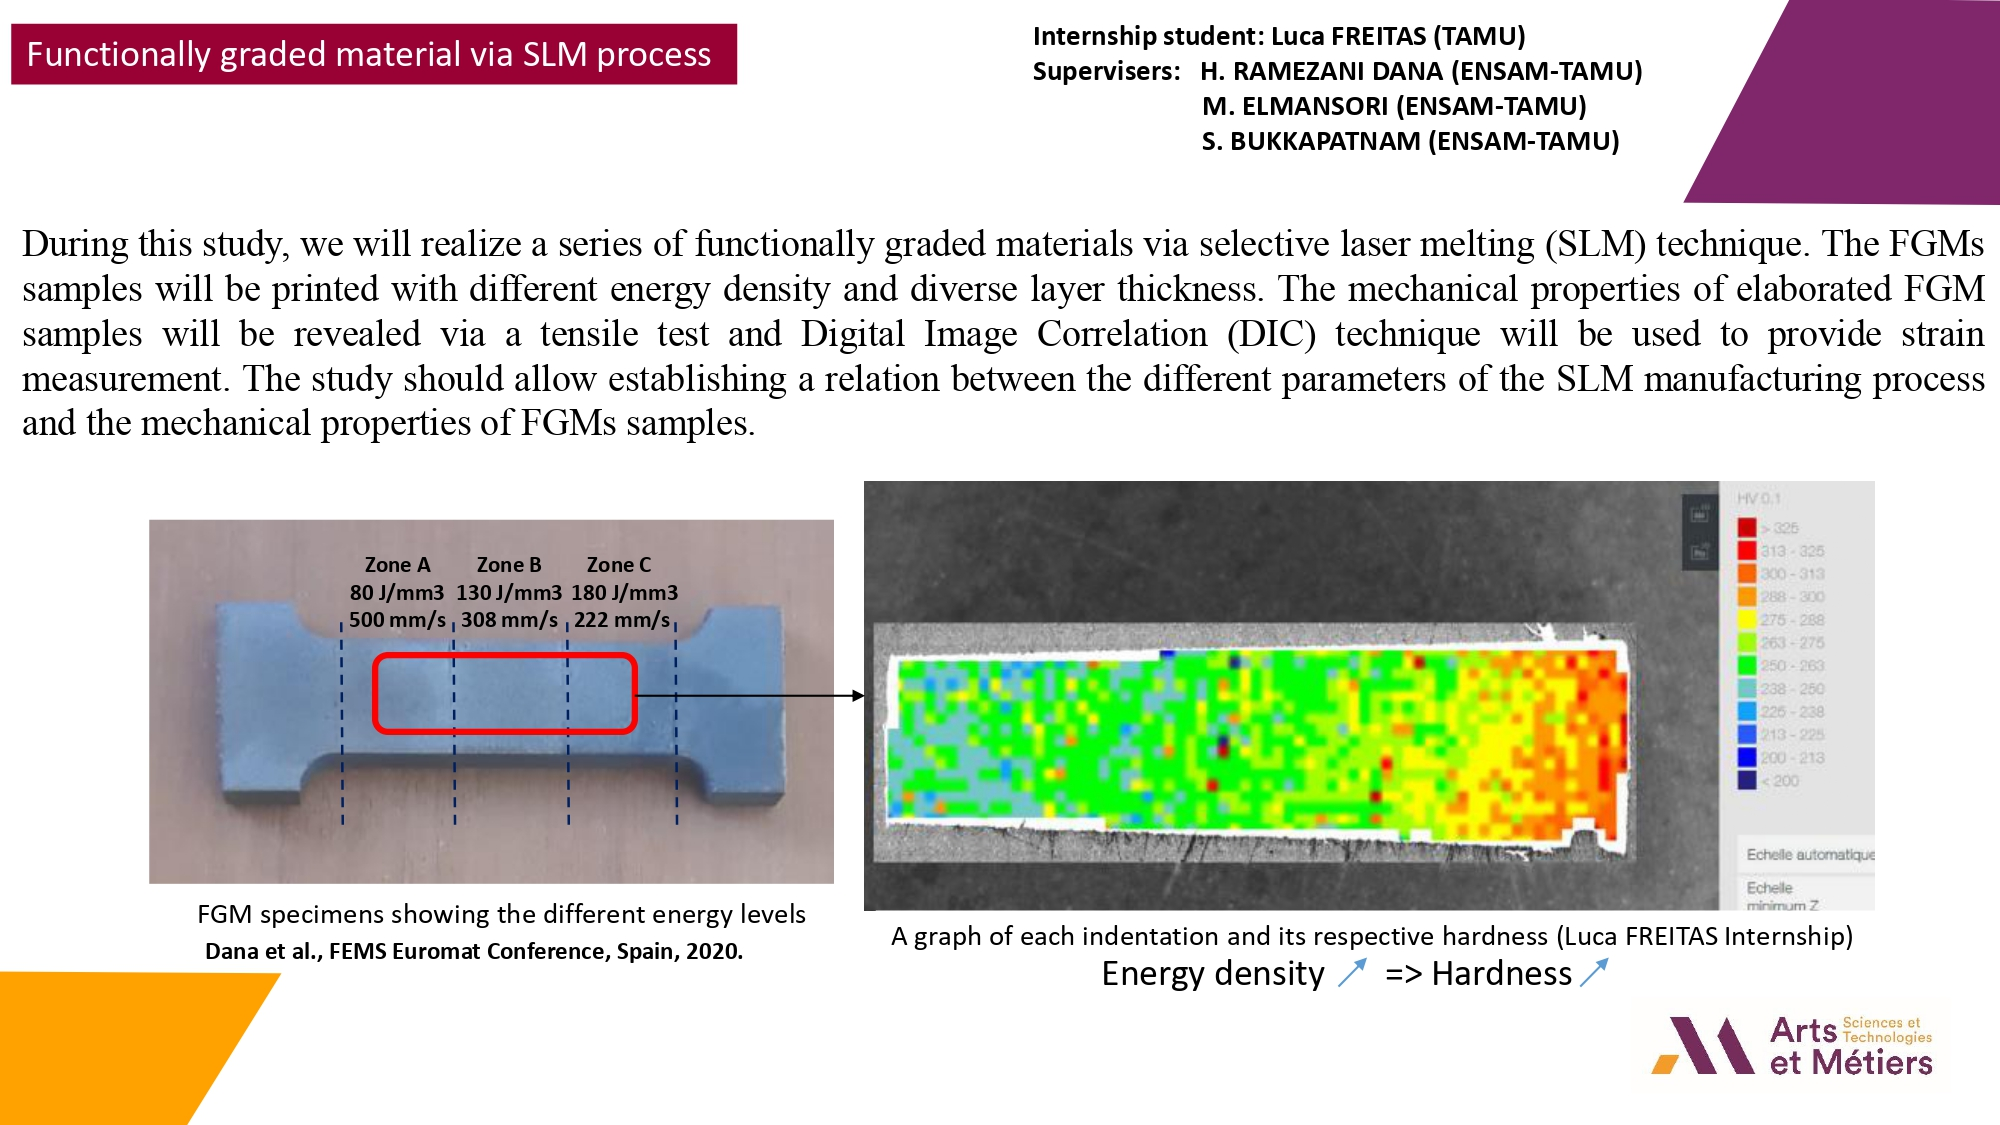 Functionnally graded material via SLM process | Events AM2